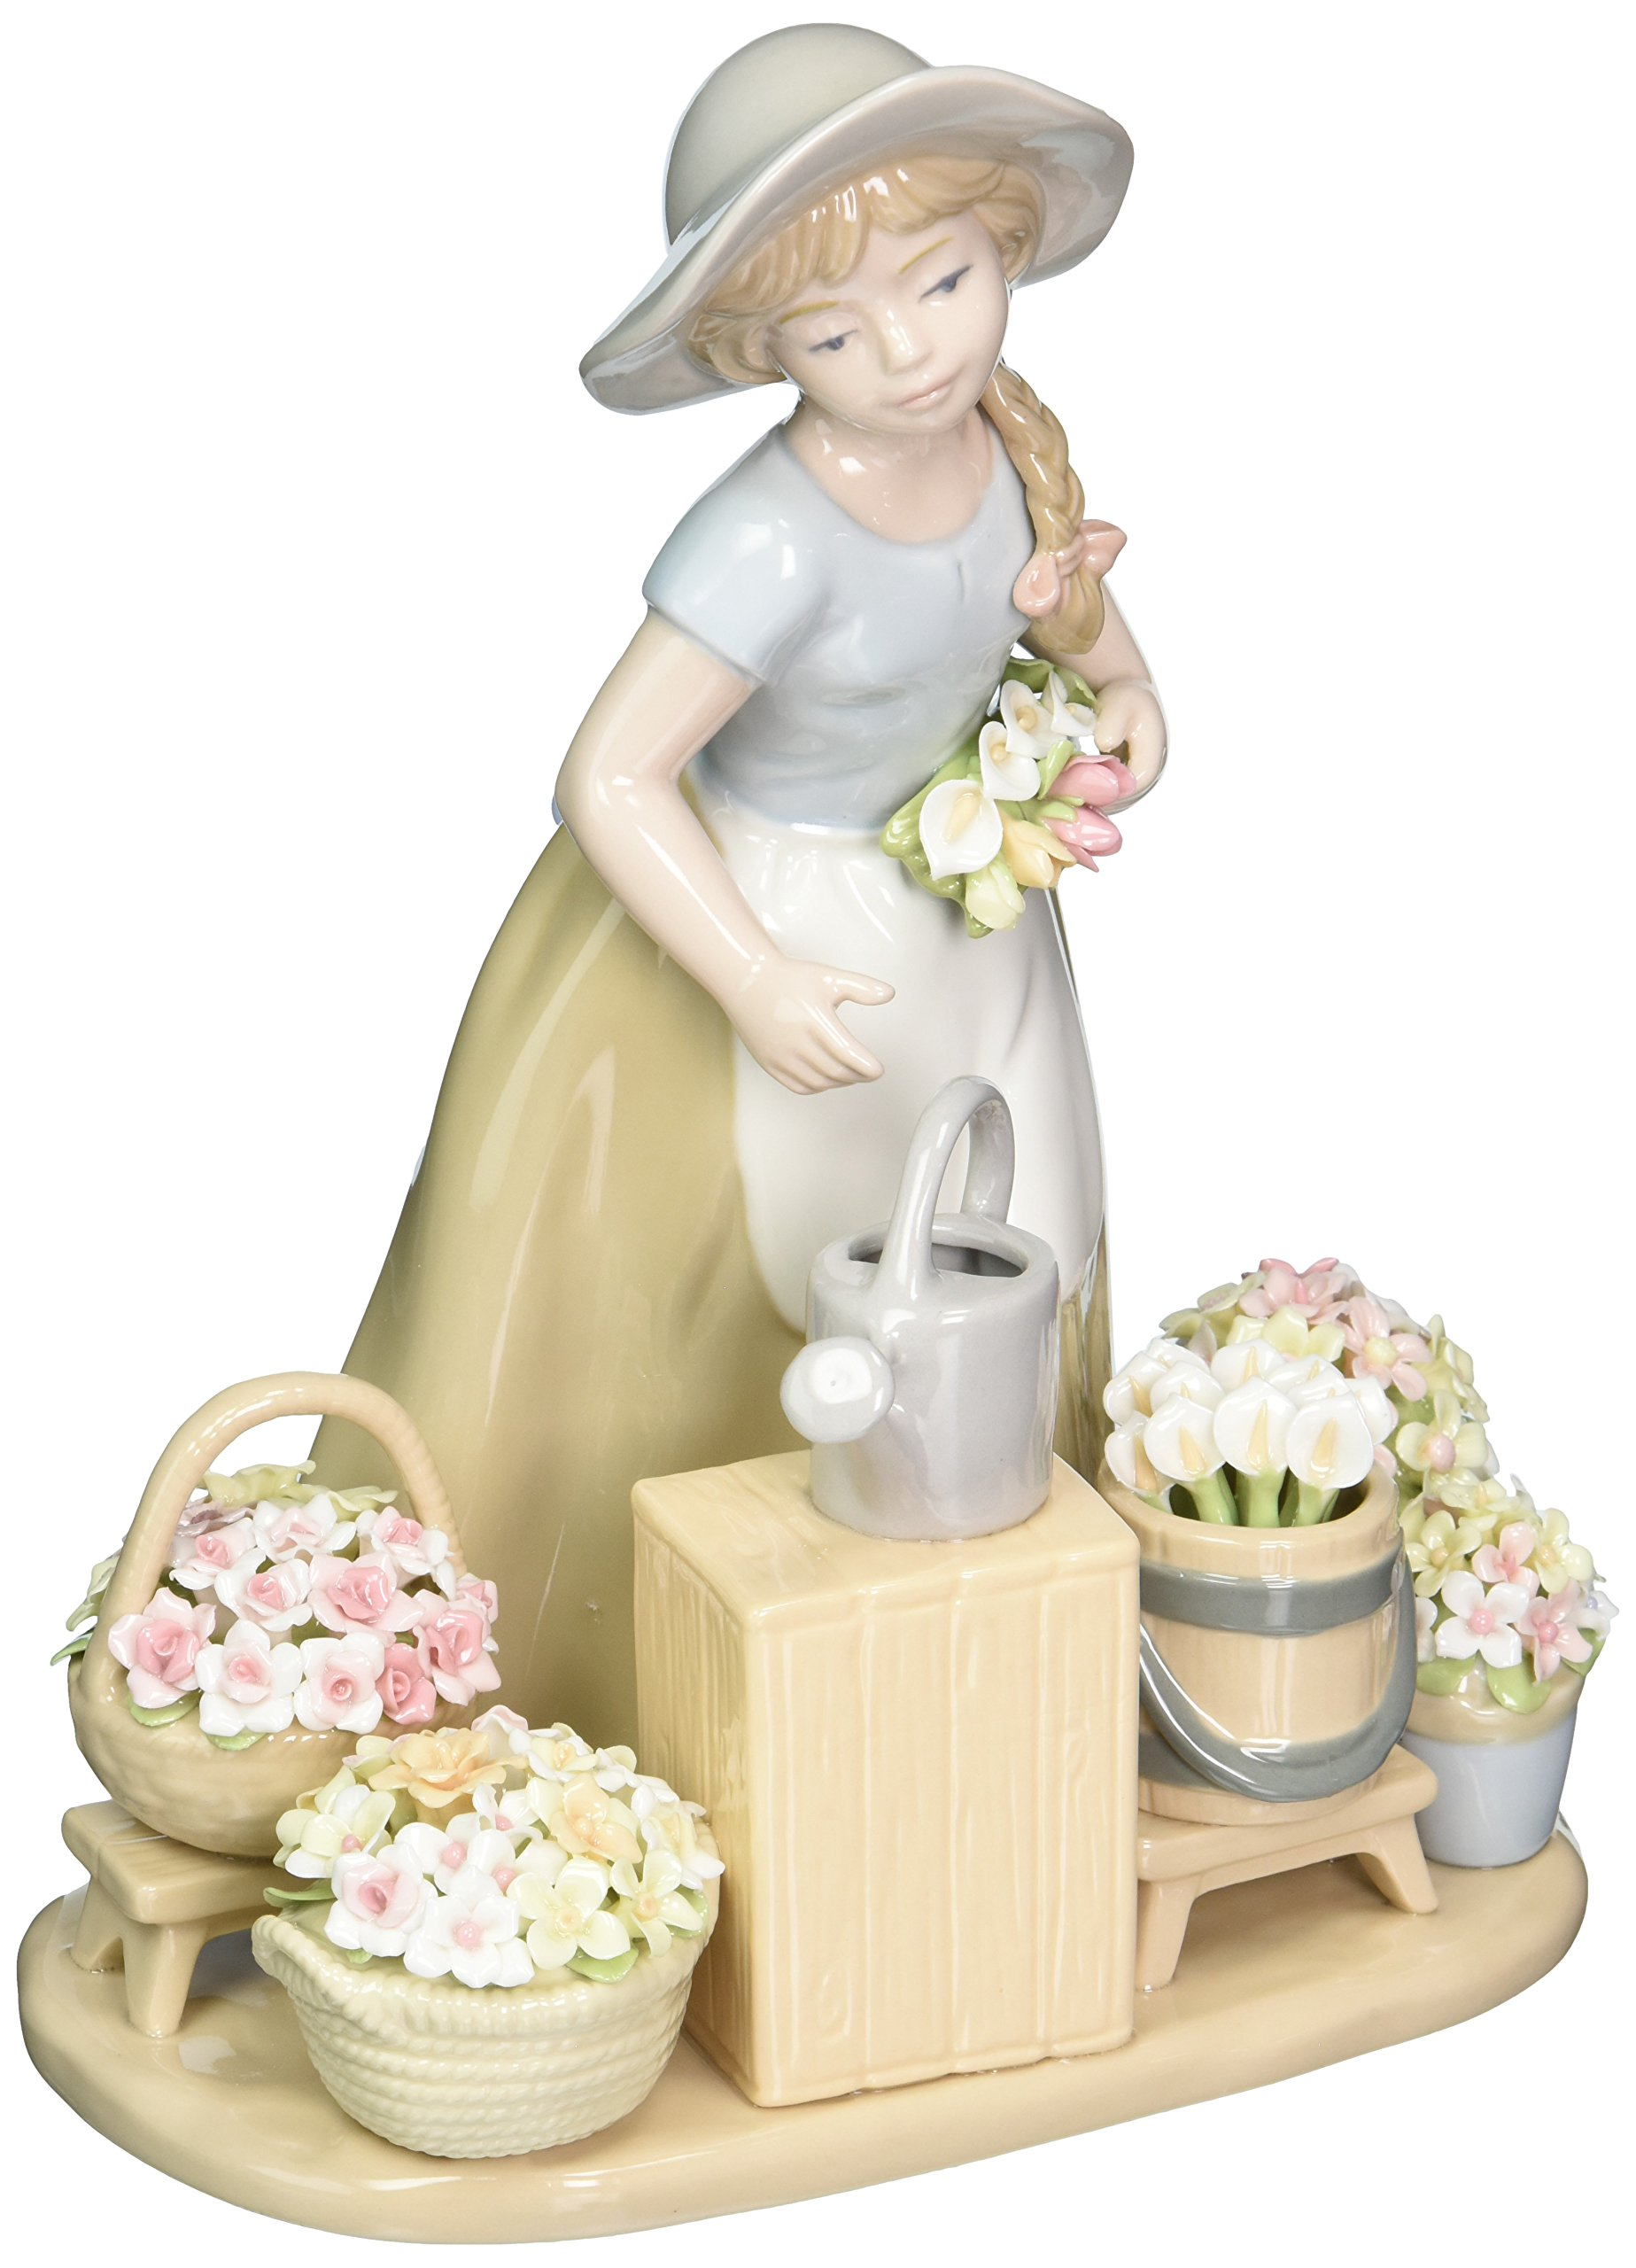 Cosmos 10418 Girl with Flower Baskets Ceramic Figurine, 9-1/8-Inch